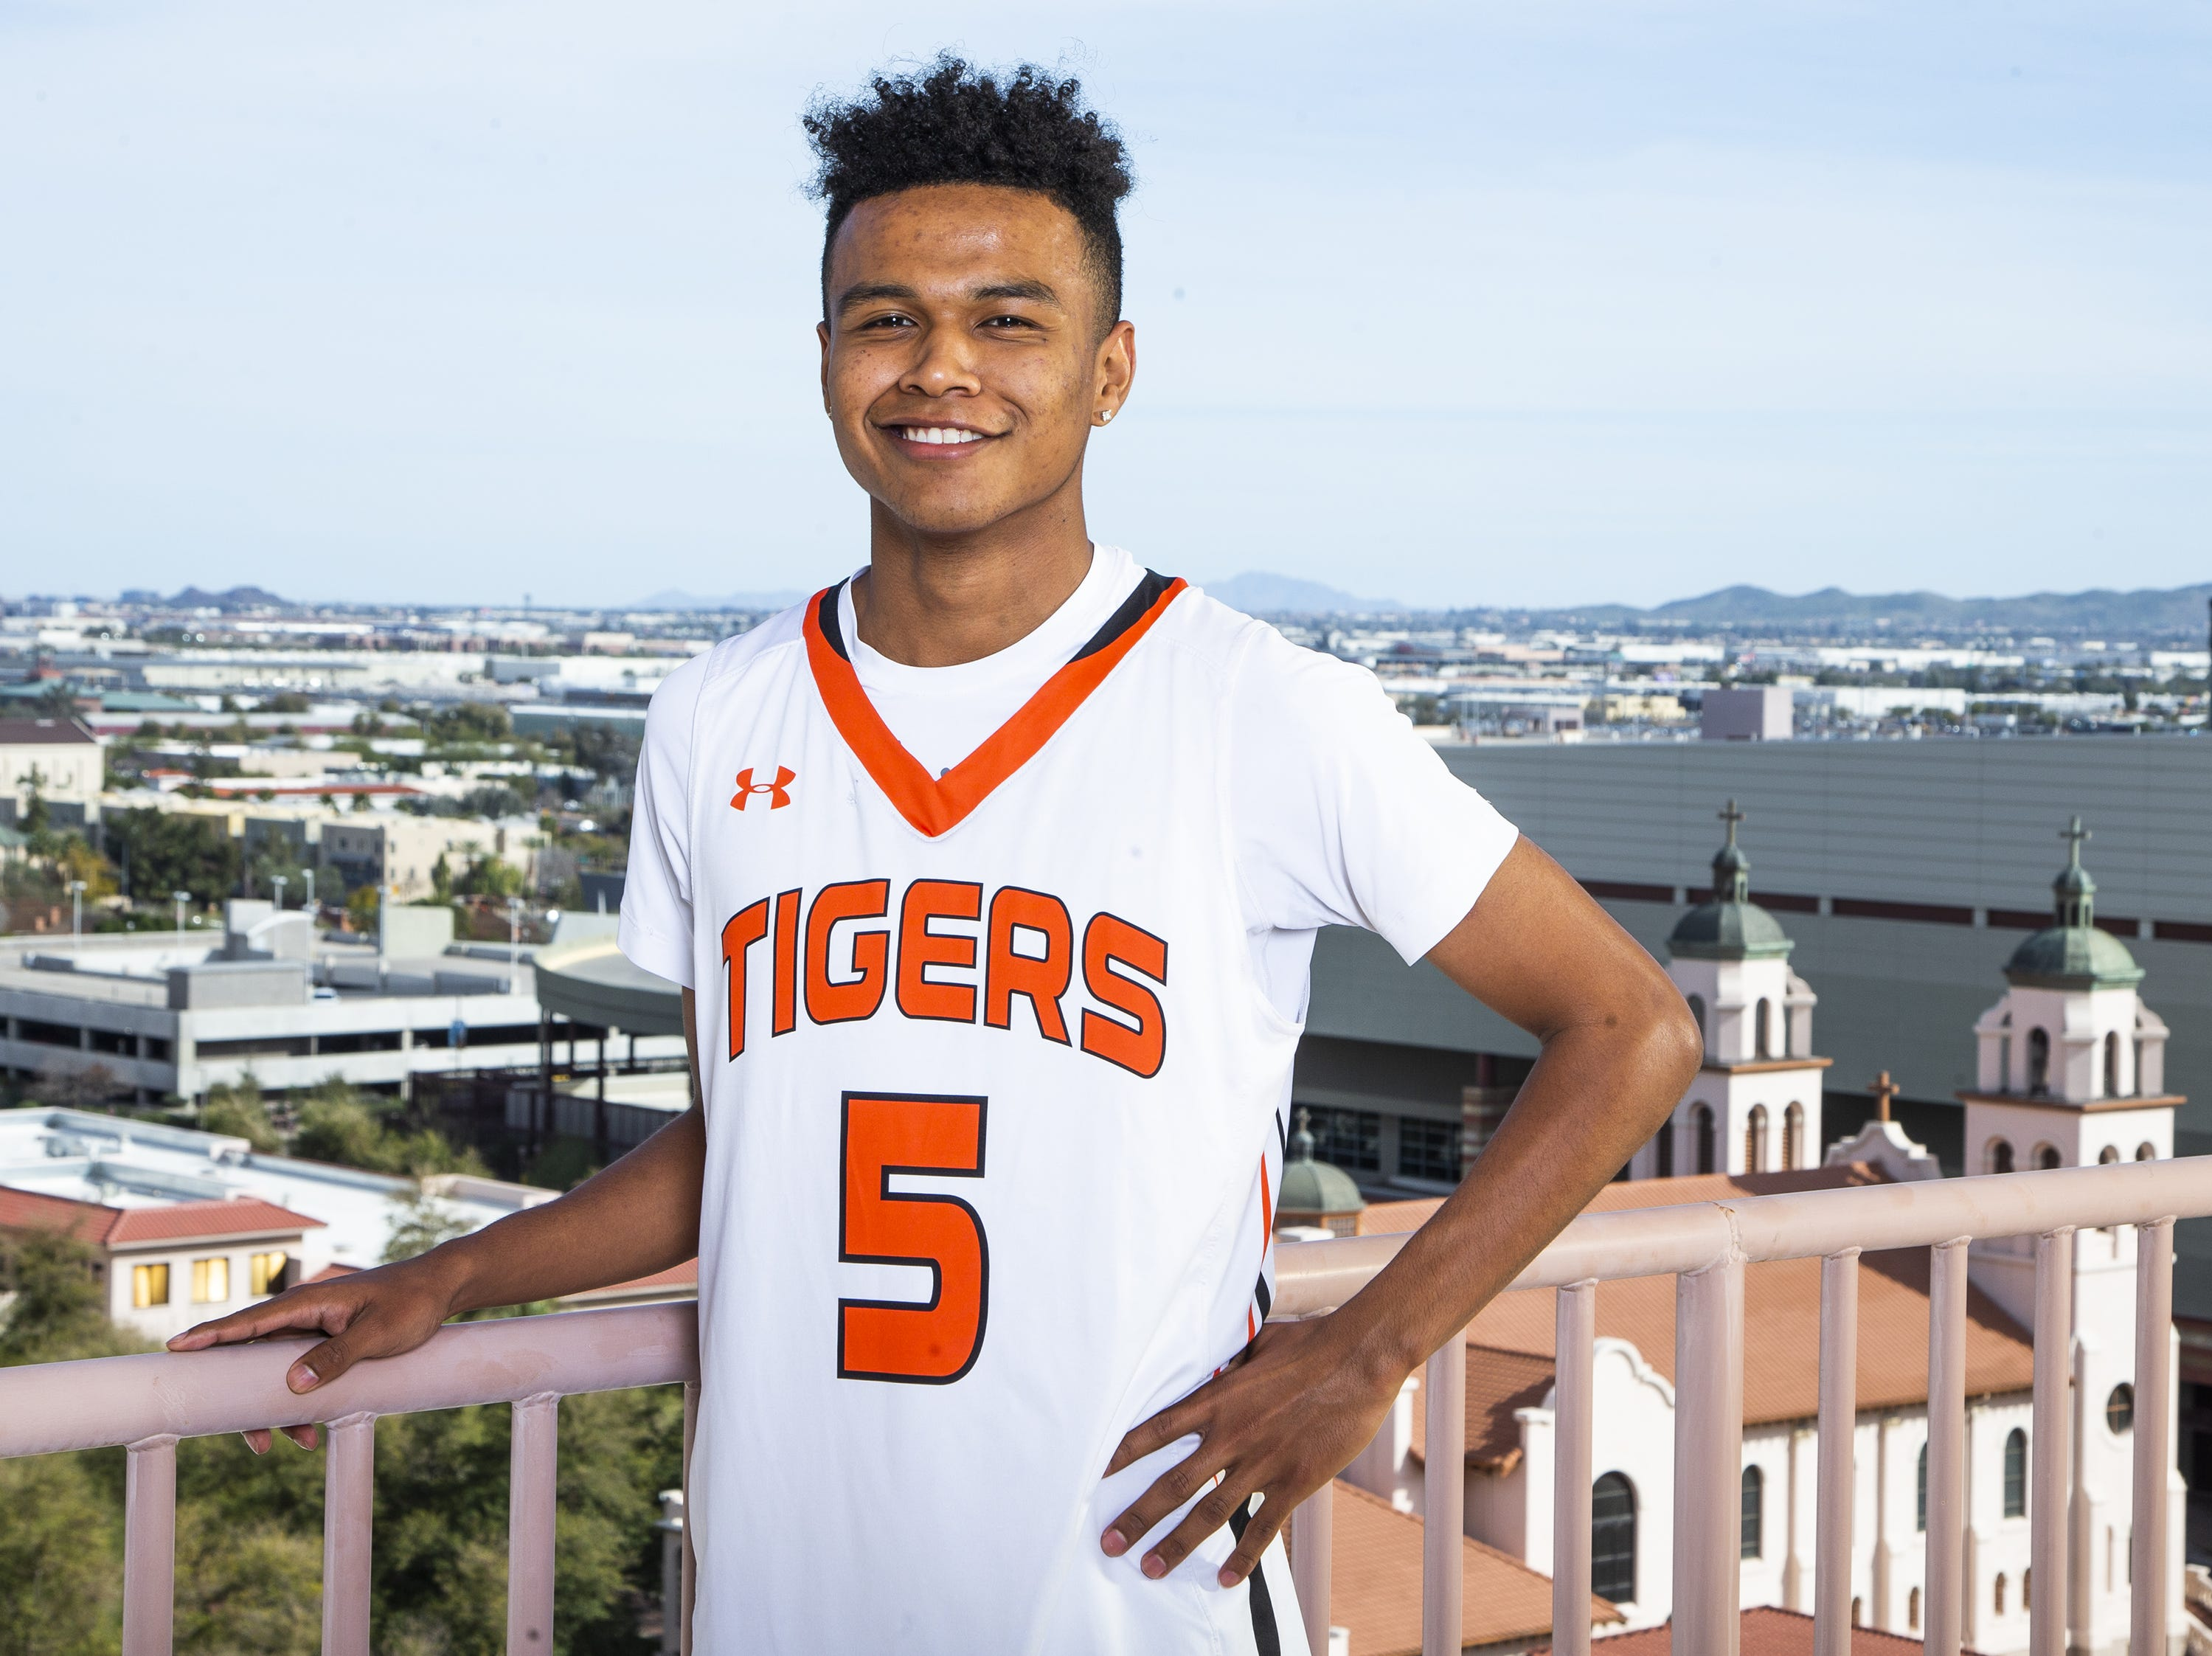 B.J. Burries of Globe poses at All-Arizona boys basketball team for the Republic Media Building in Phoenix, Monday, March 4, 2019.